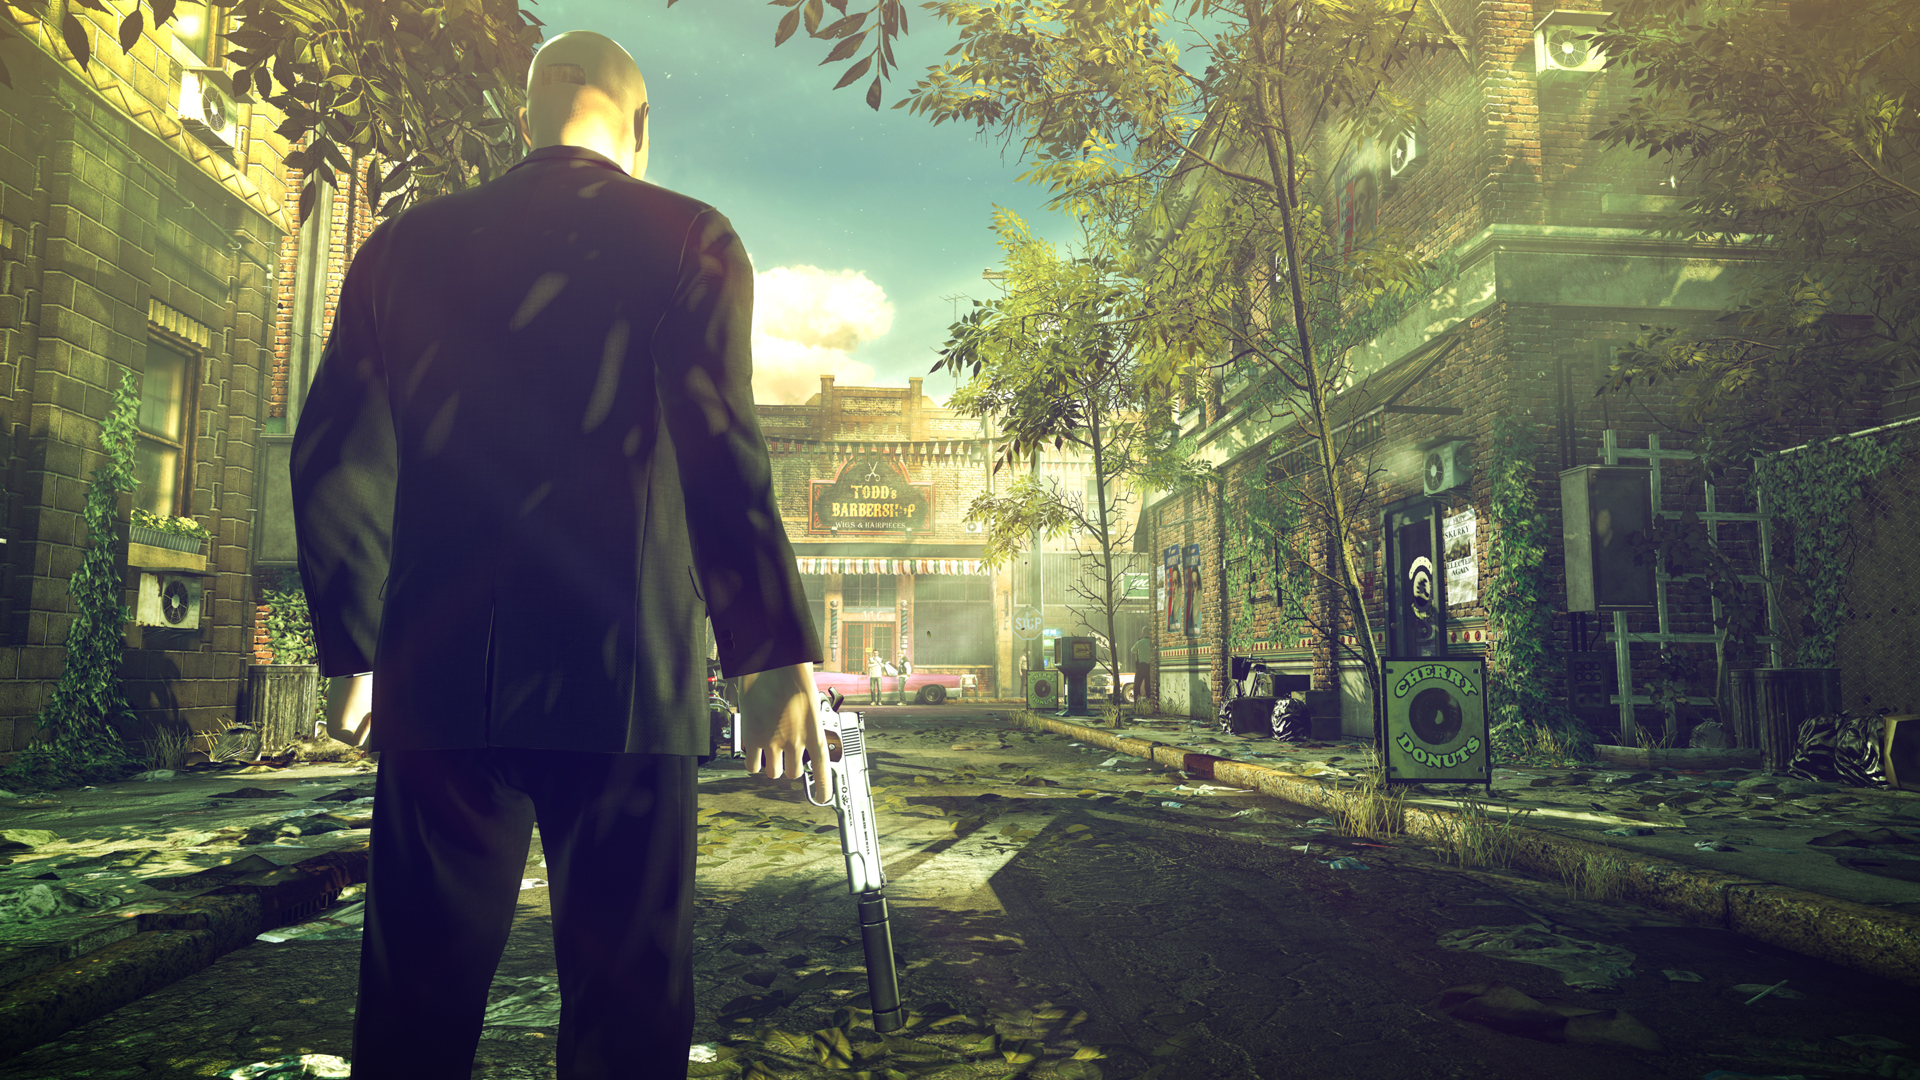 Hitman 5 Absolution Compressed PC Game Free Download 10.3 GB